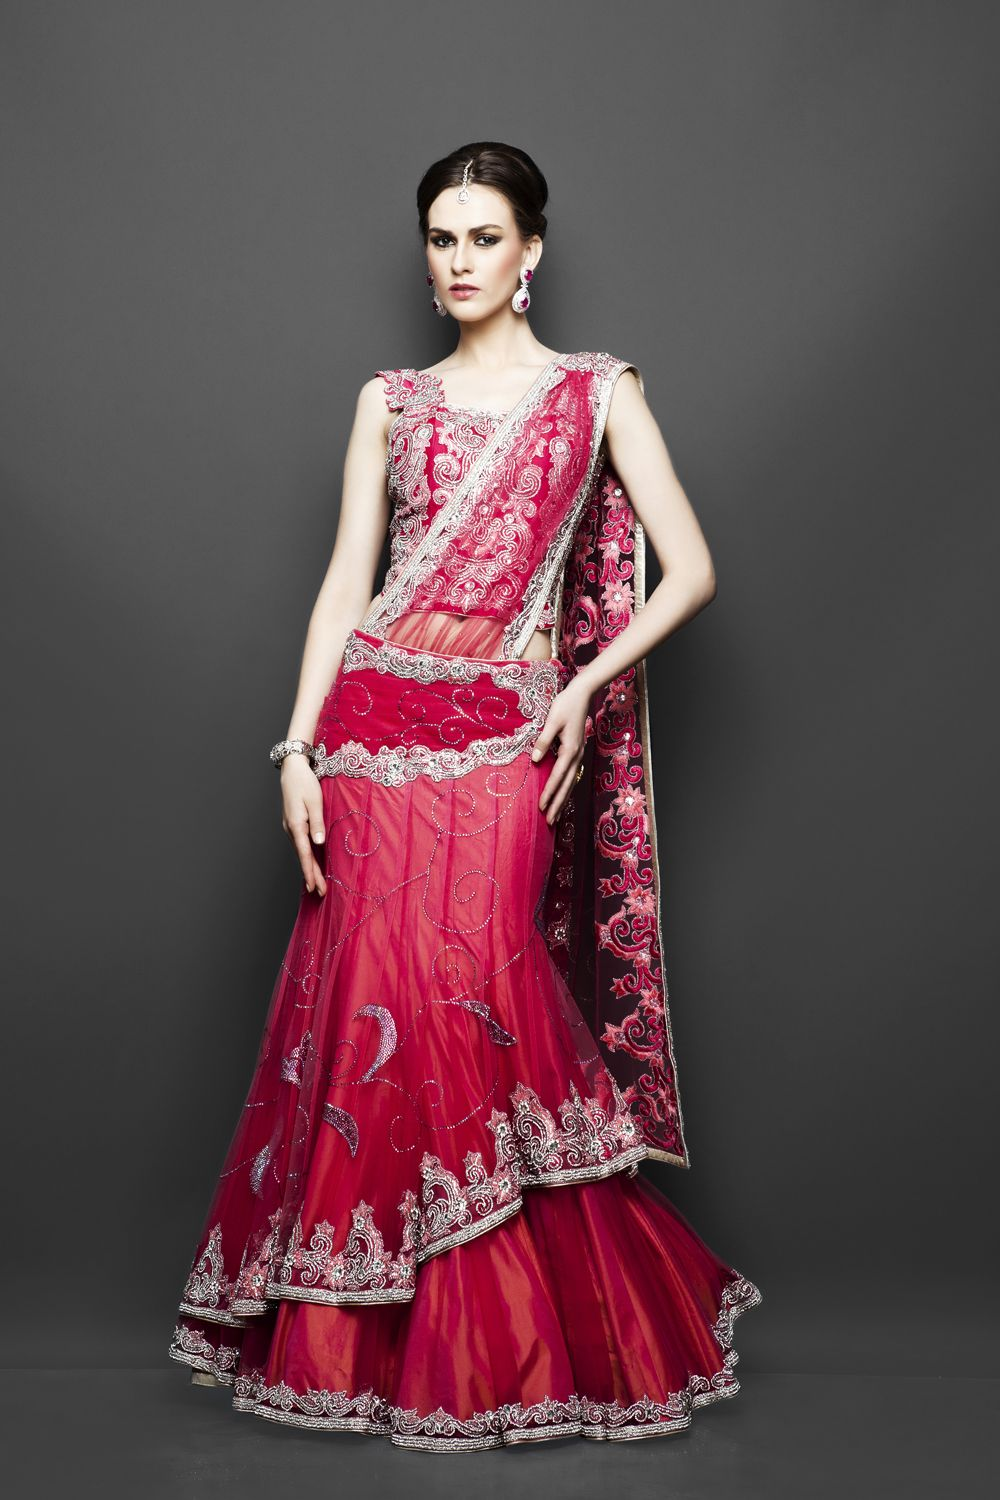 Indian wedding gown style maharanis pinterest for Punjabi wedding dresses online